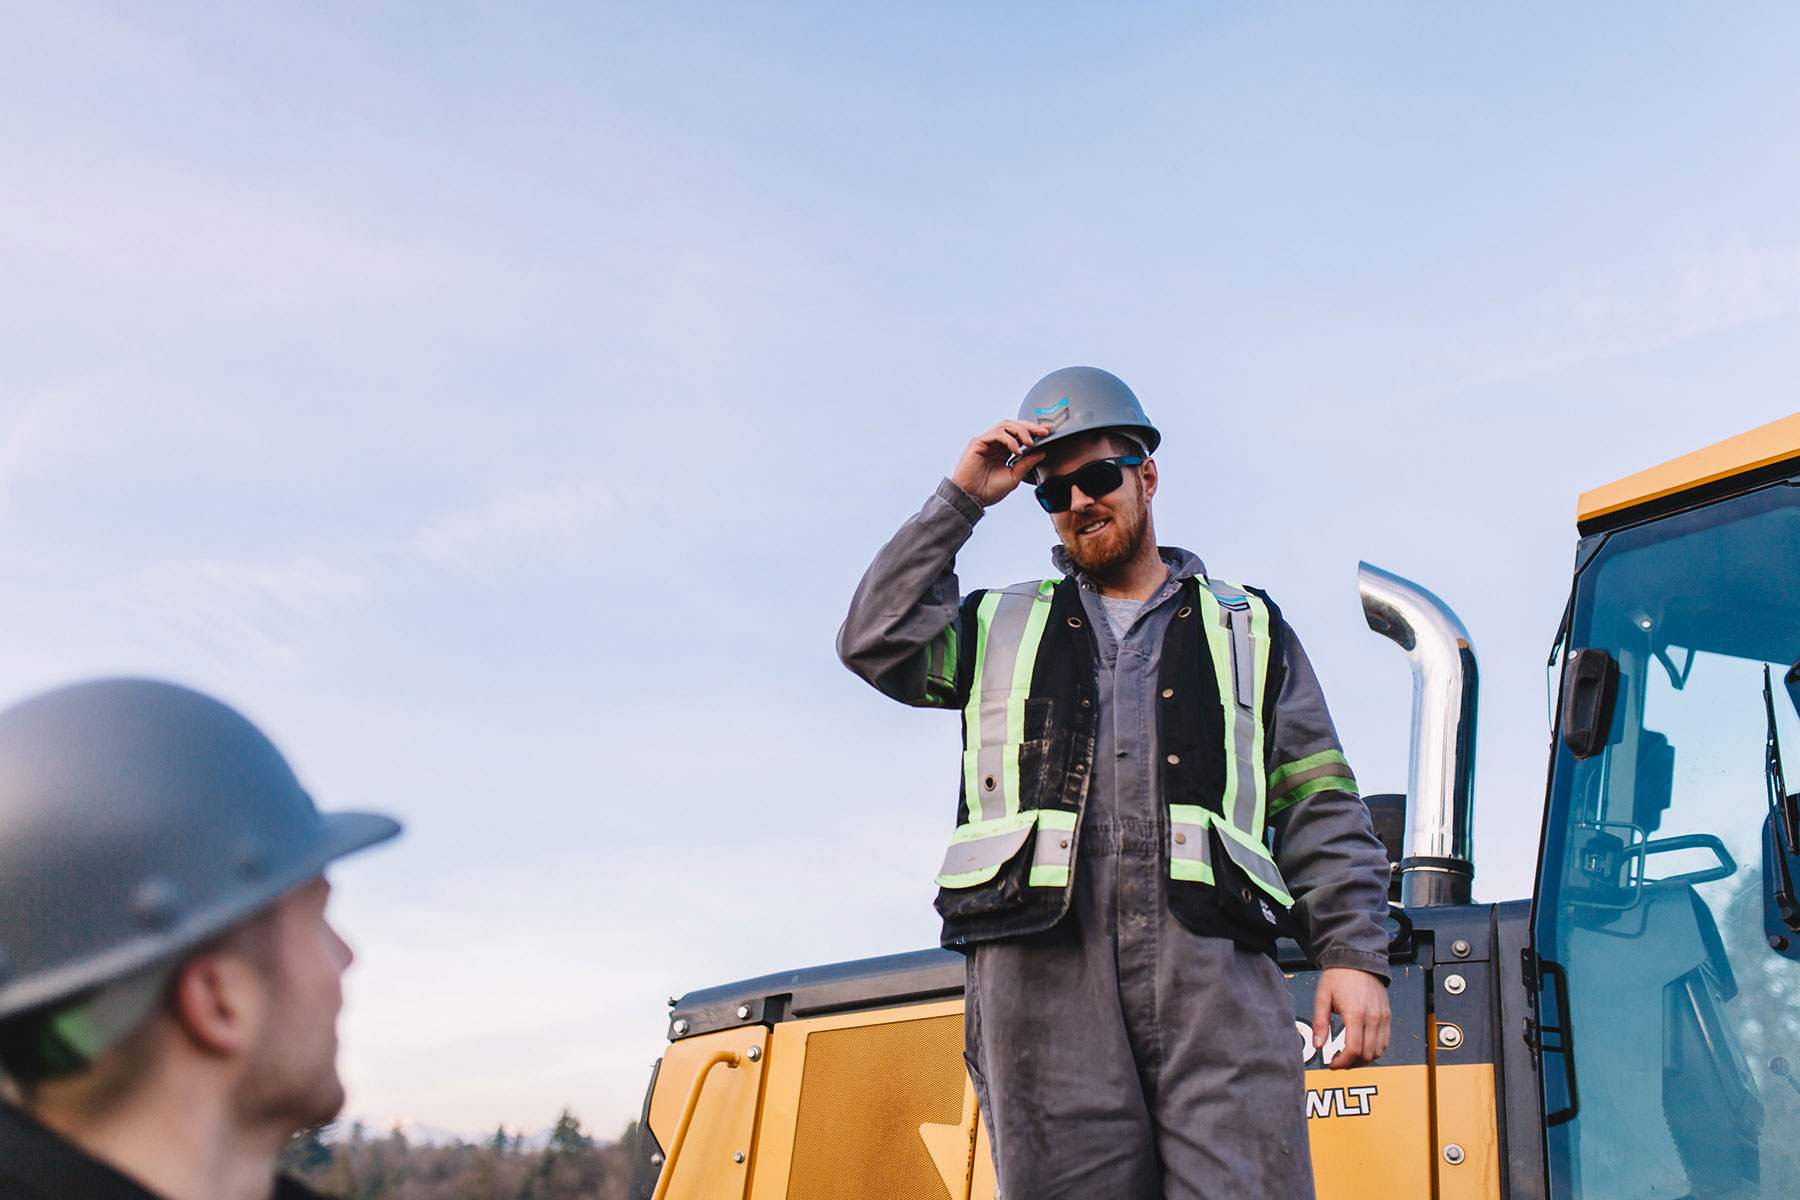 Construction worker on a jobsite.